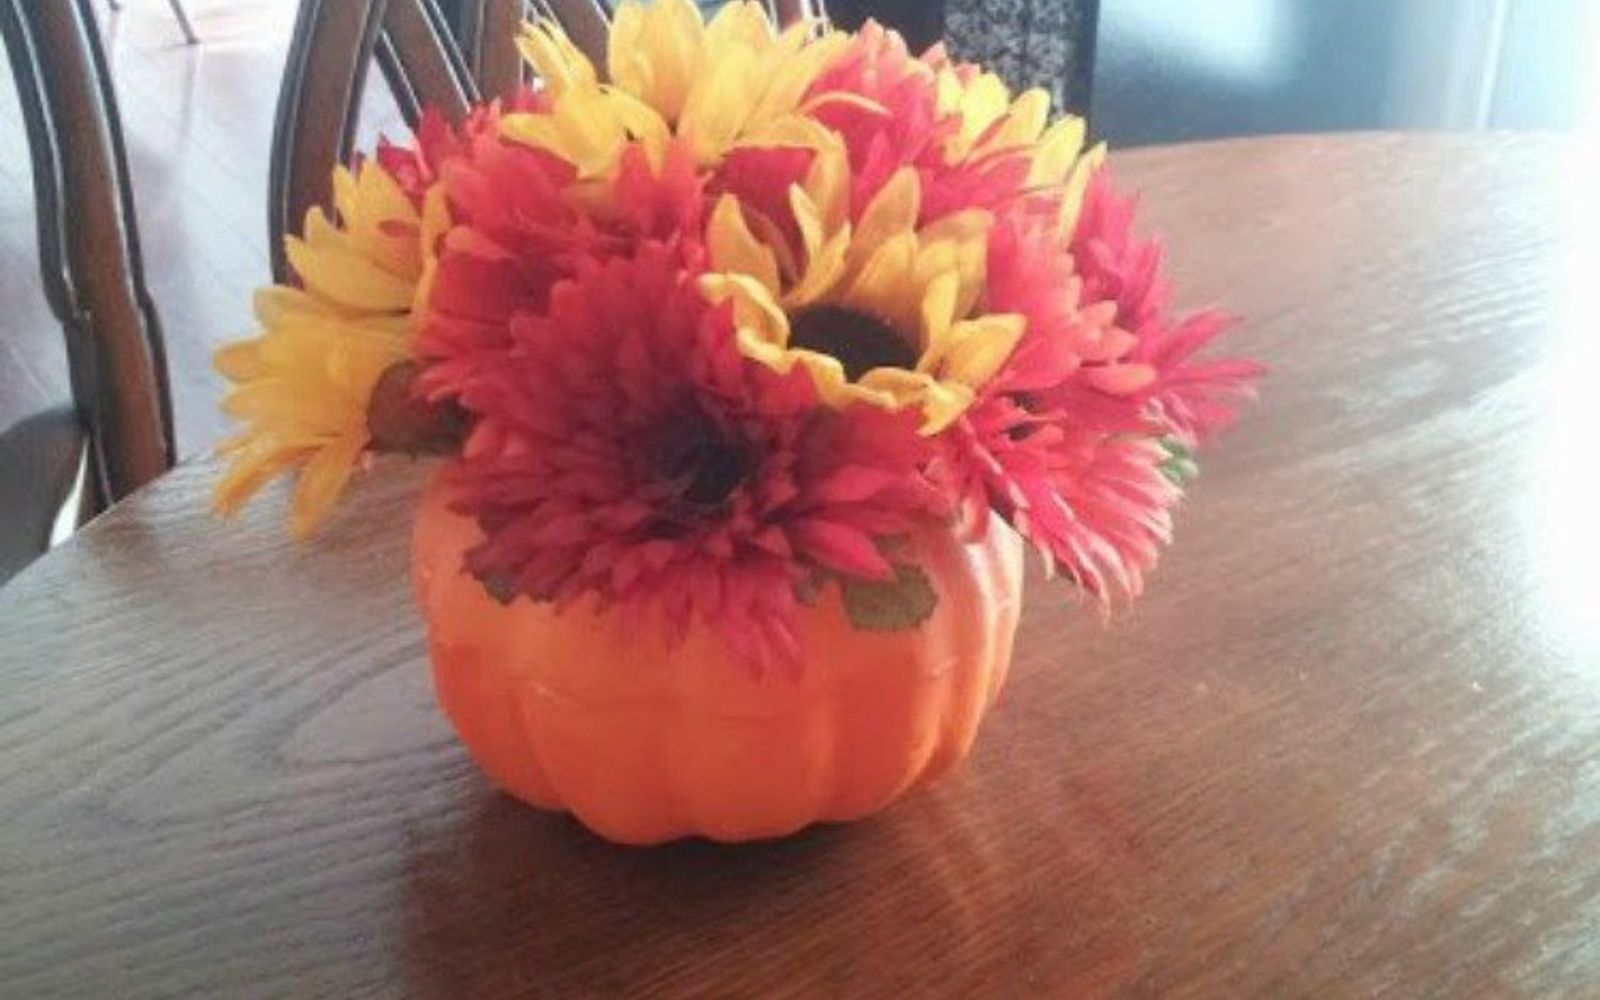 s why everyone is buying artificial flowers for the holidays, gardening, They fit perfectly in pumpkin planters